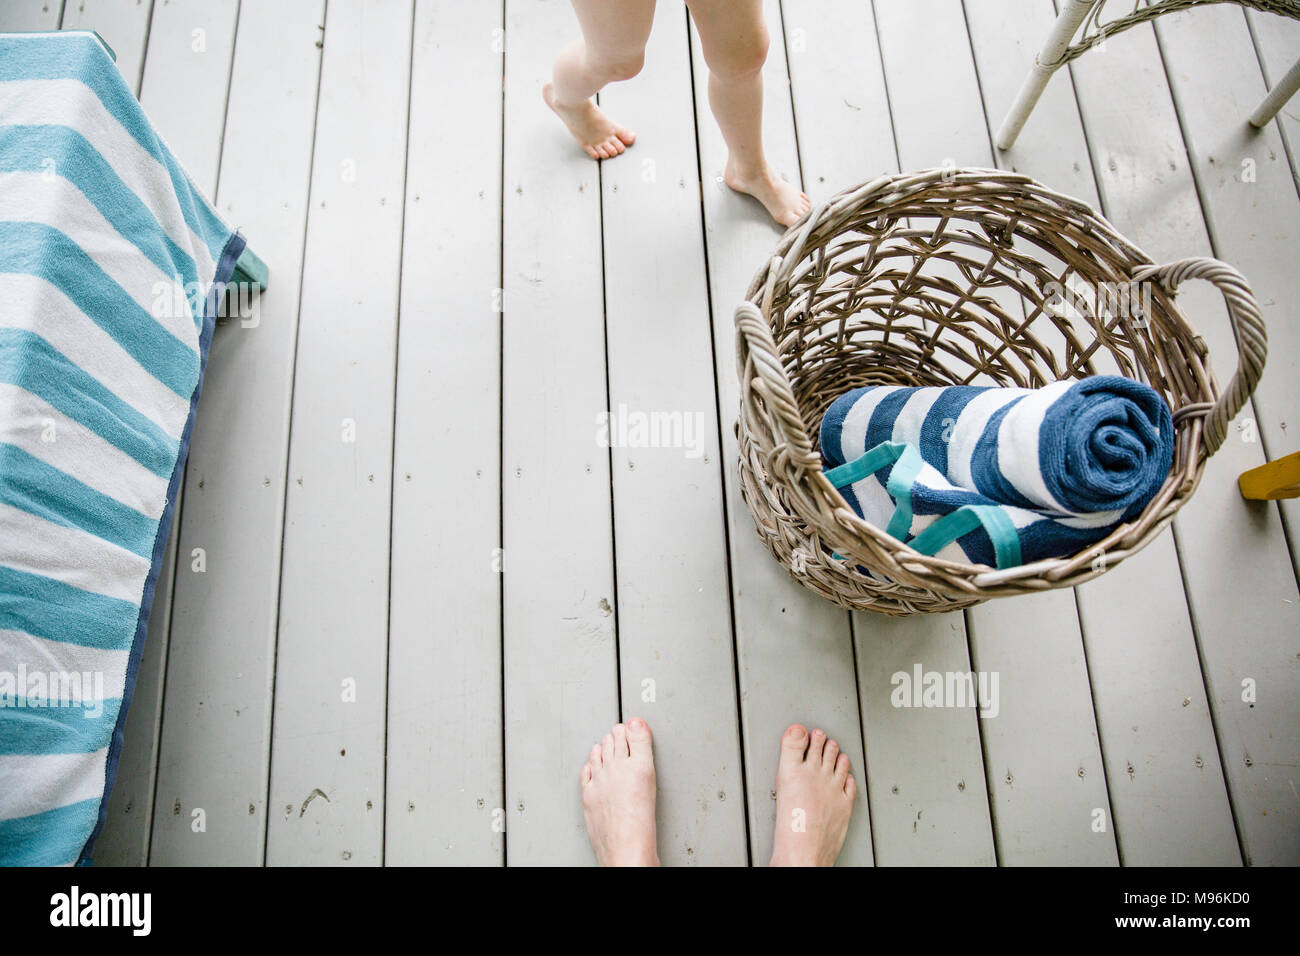 Wicker basket with towels next to children's feet - Stock Image